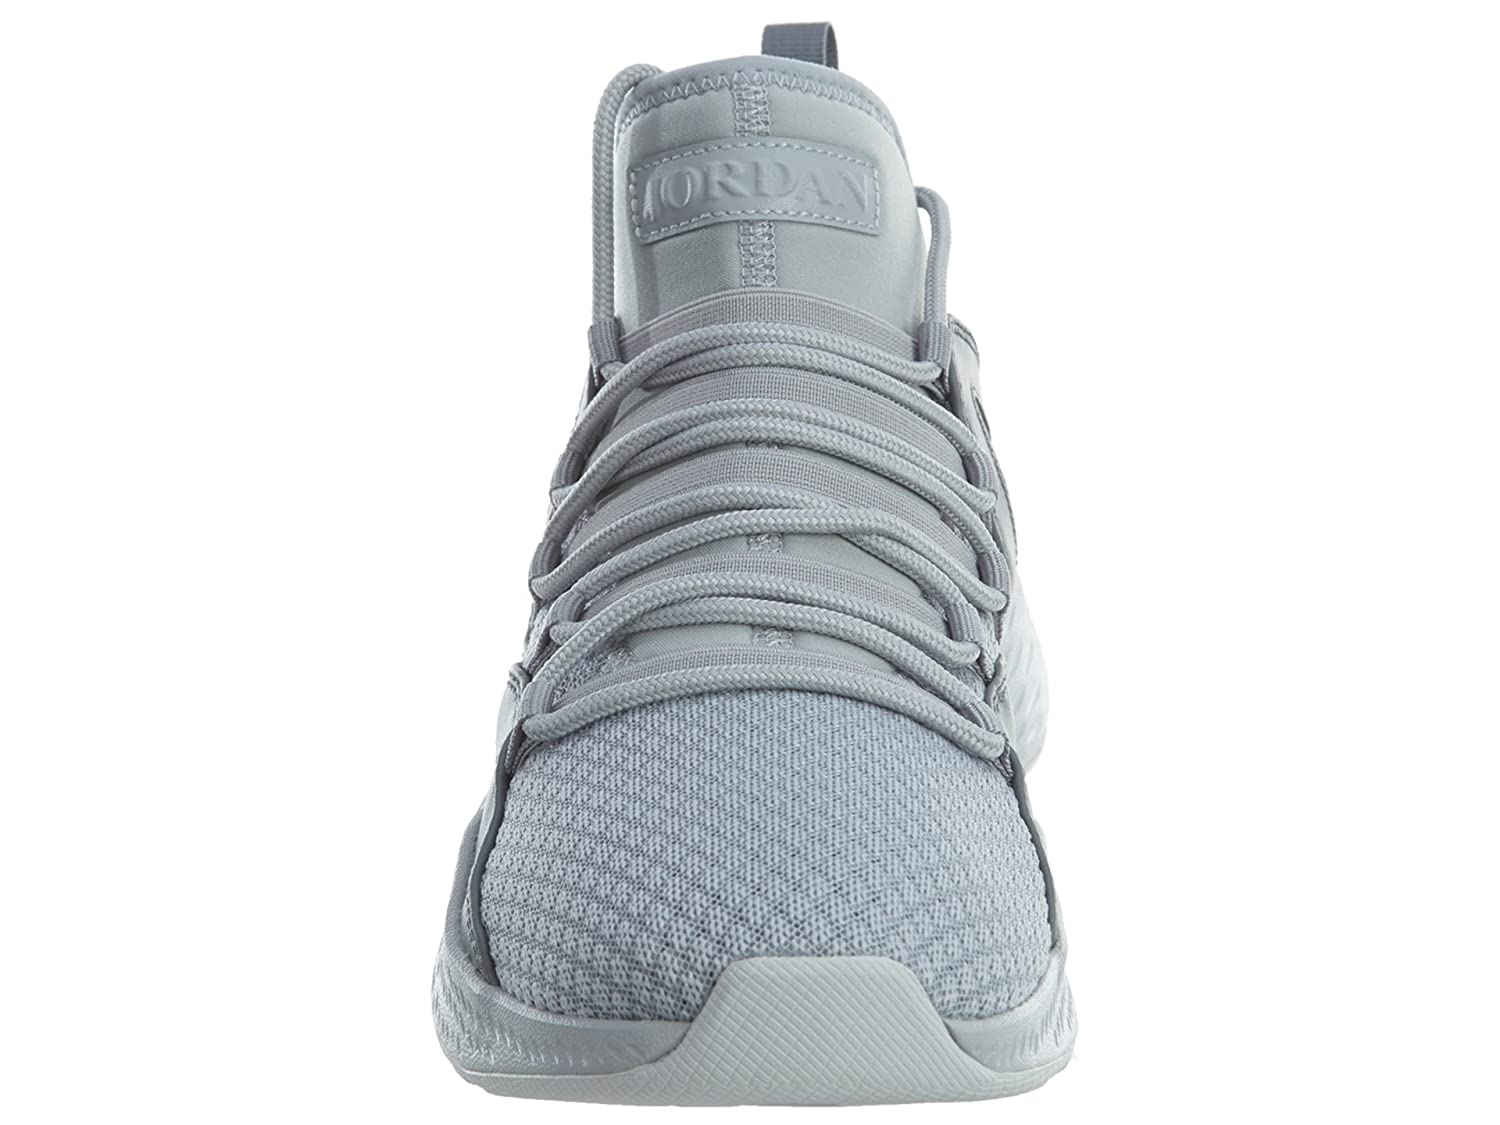 Man's/Woman's Jordan Nike Men's Formula 23 Basketball Shoe Ideal occasions gift for all occasions Ideal Impeccable professional design BN24325 62ba94